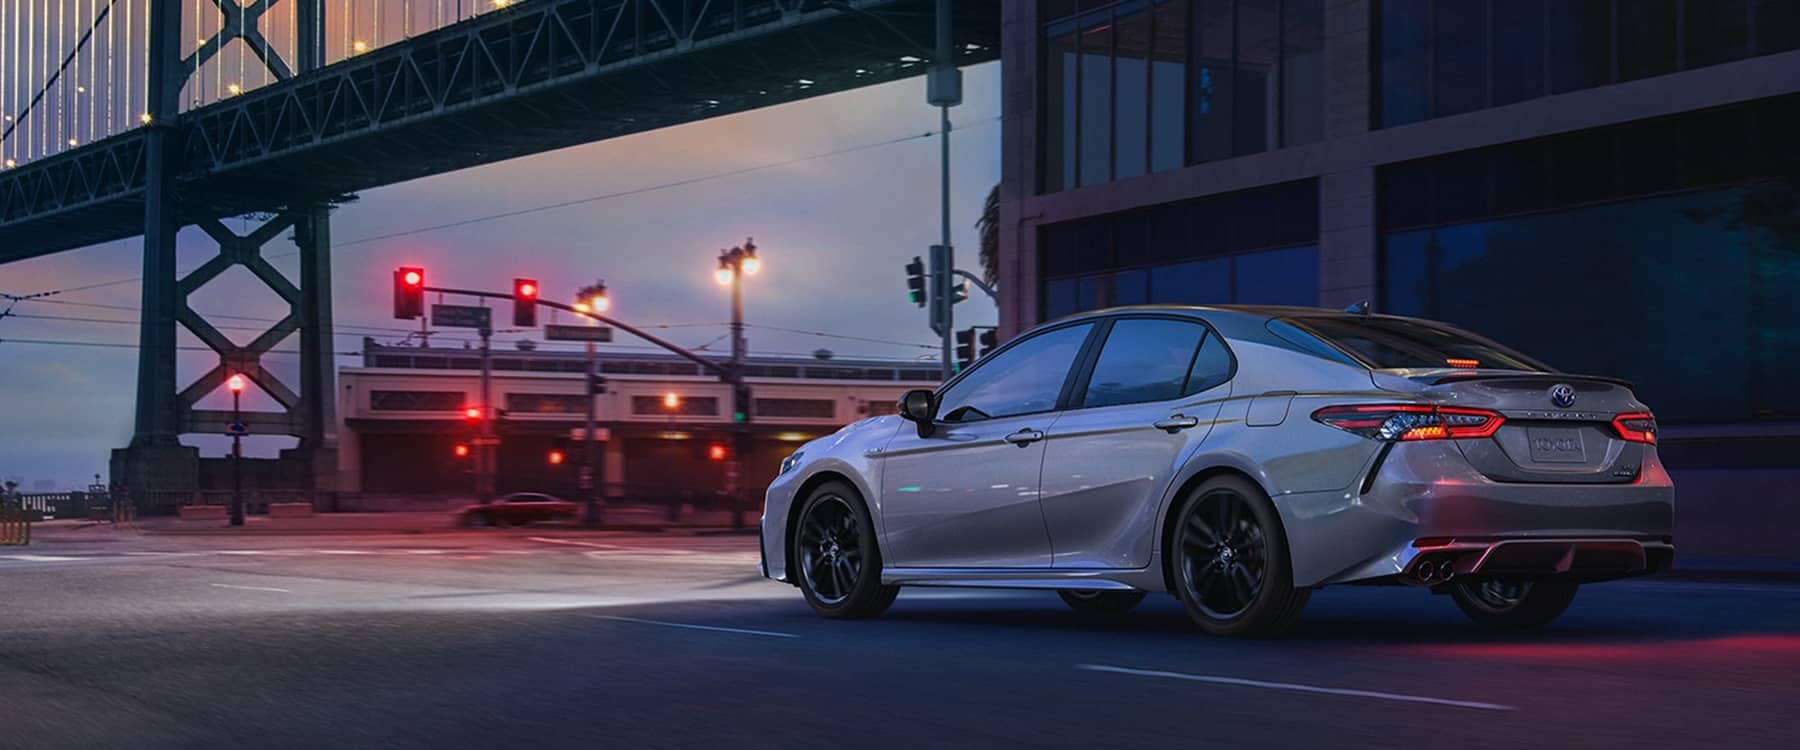 2021 Toyota Camry parked outside building by bridge